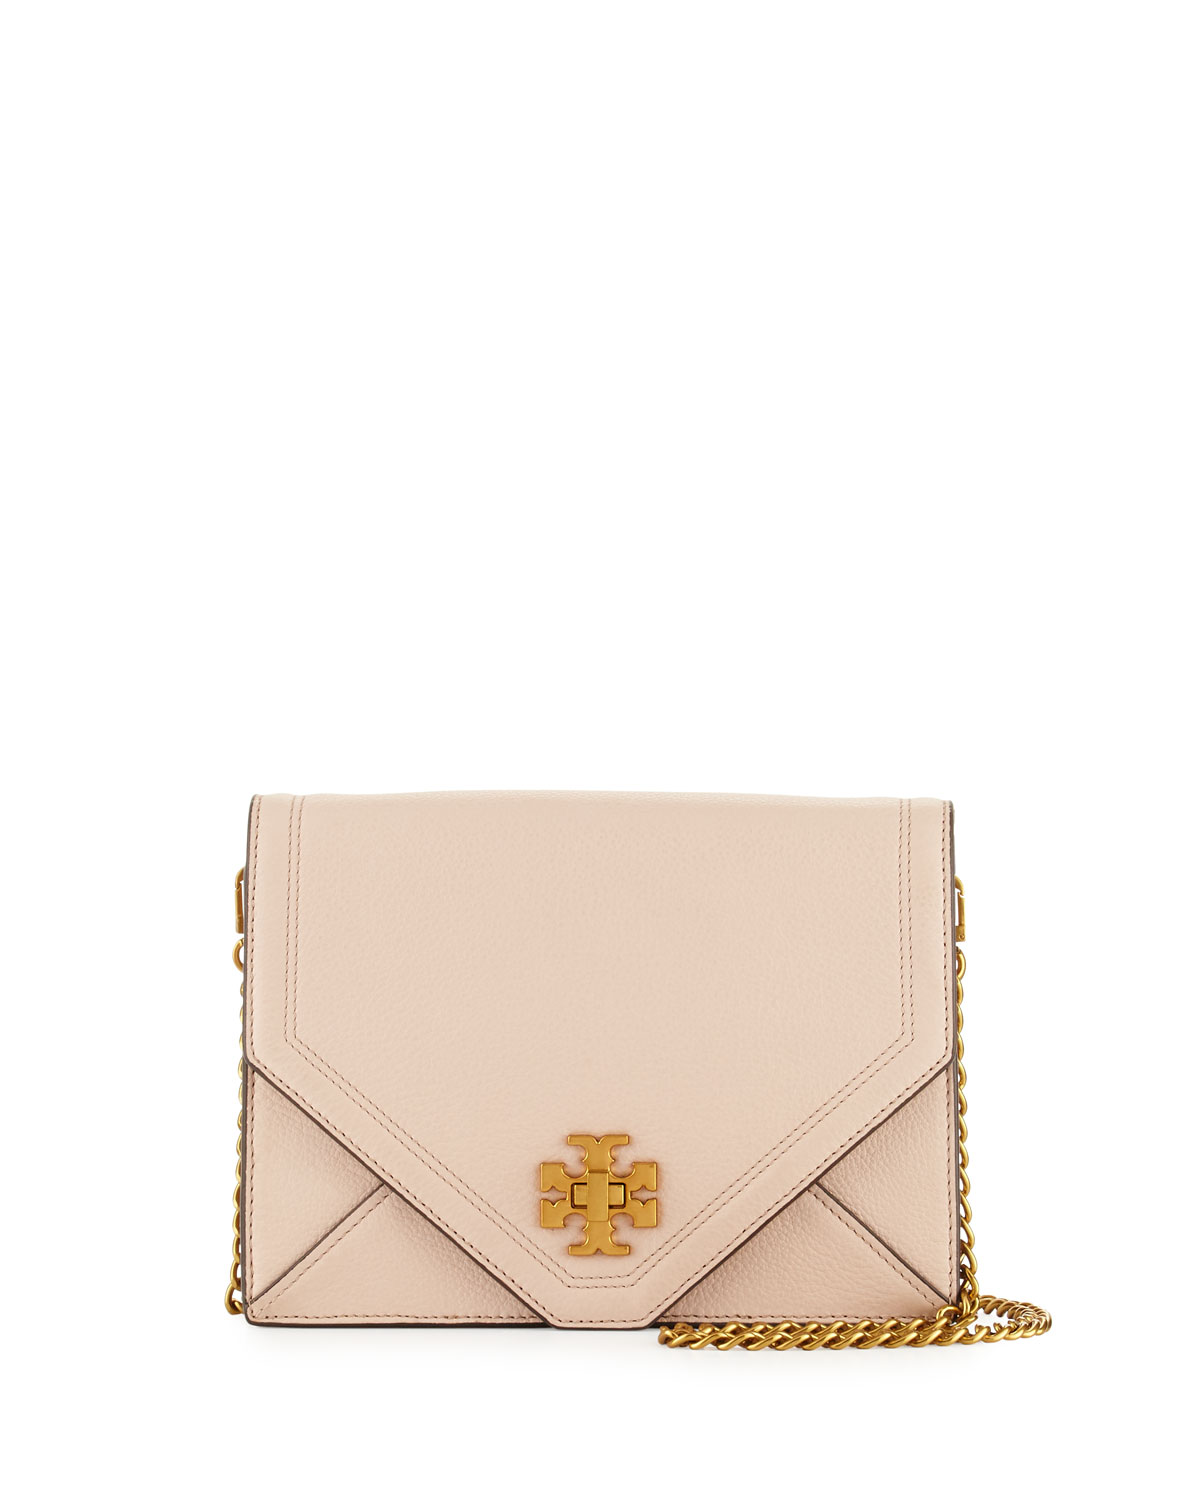 d5651f673e Tory Burch Kira Envelope Leather Crossbody Bag | Neiman Marcus